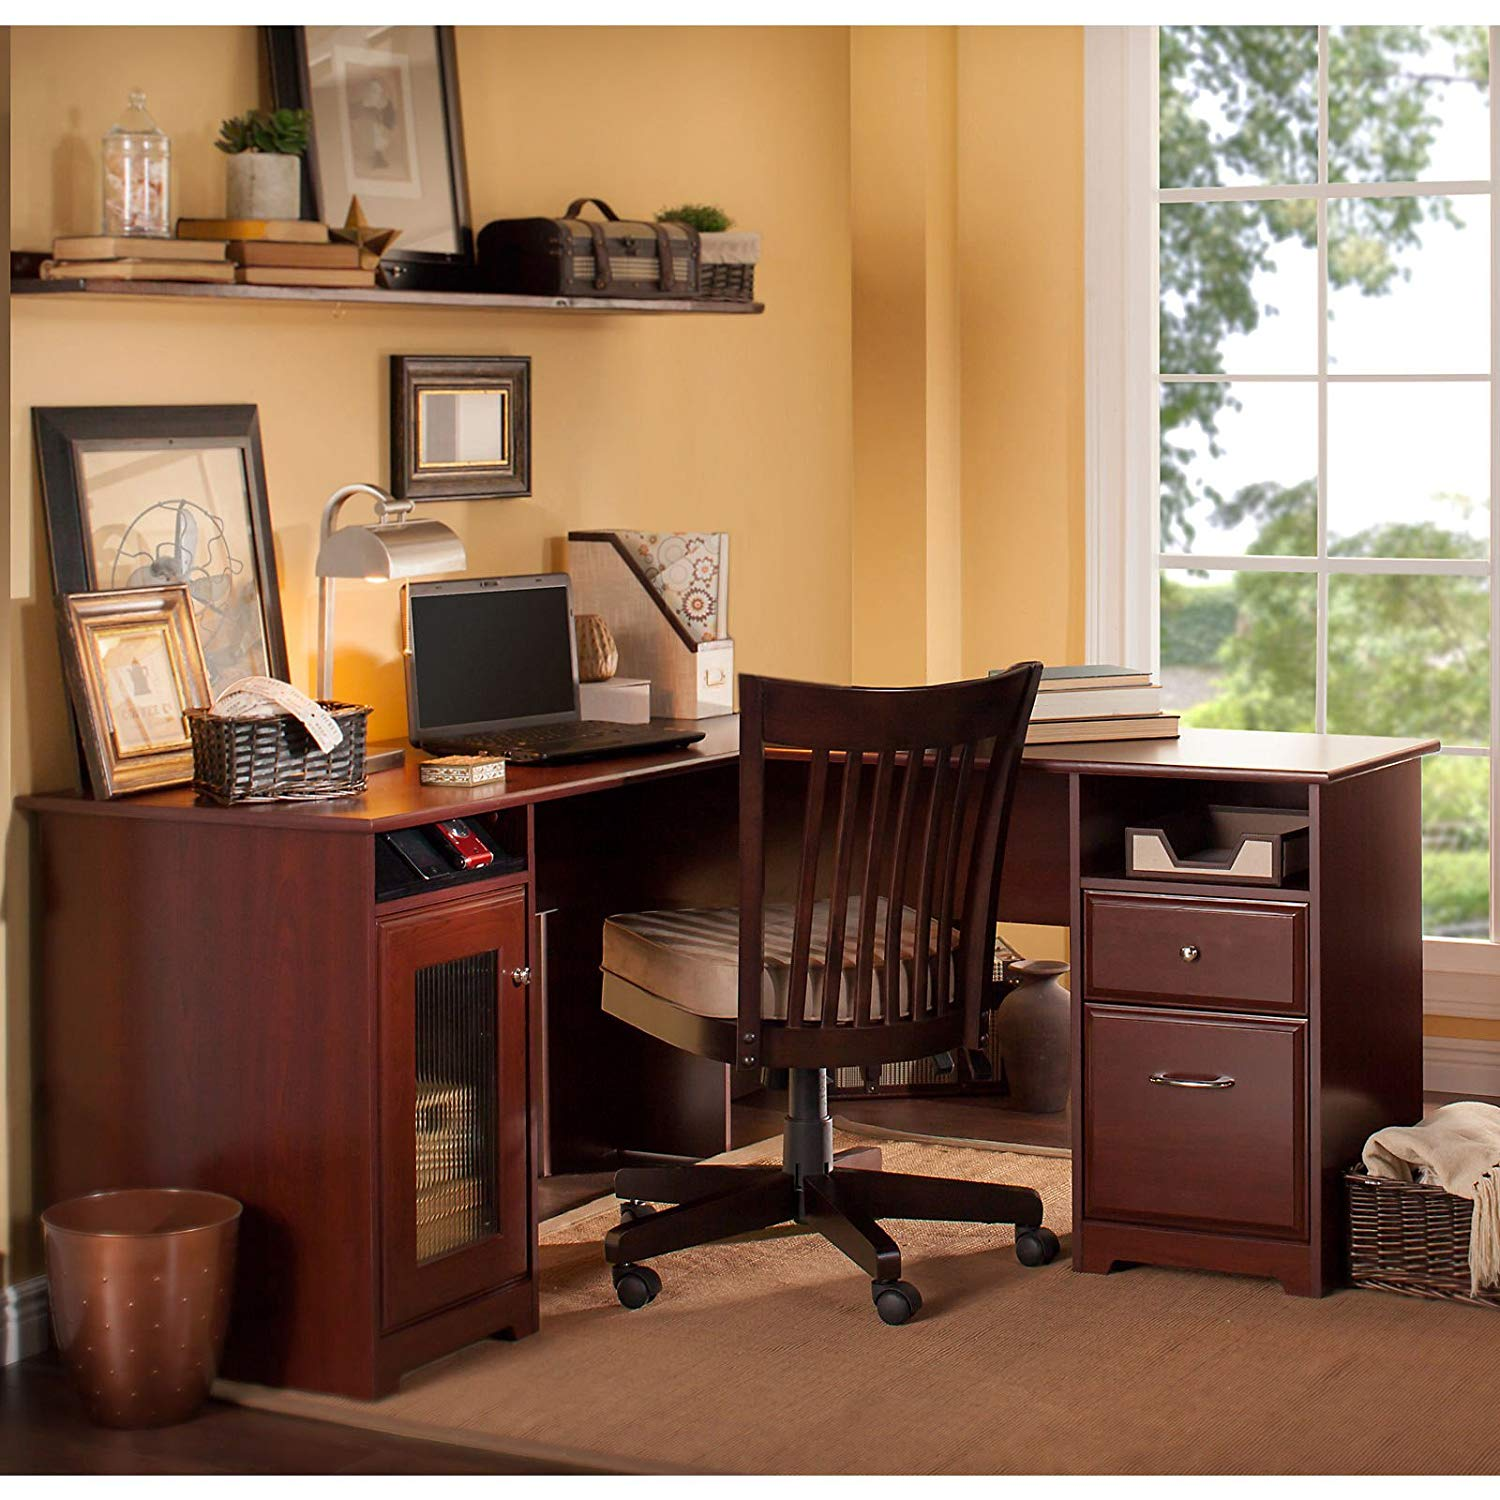 L Shaped Office Writing Desk With File Drawer And Glass Door Cabinet, Open And Closed Storage Space, Workspace, Functional Furniture, Ideal For Home Office, Corner Desk, Cherry Finish + Expert Guide